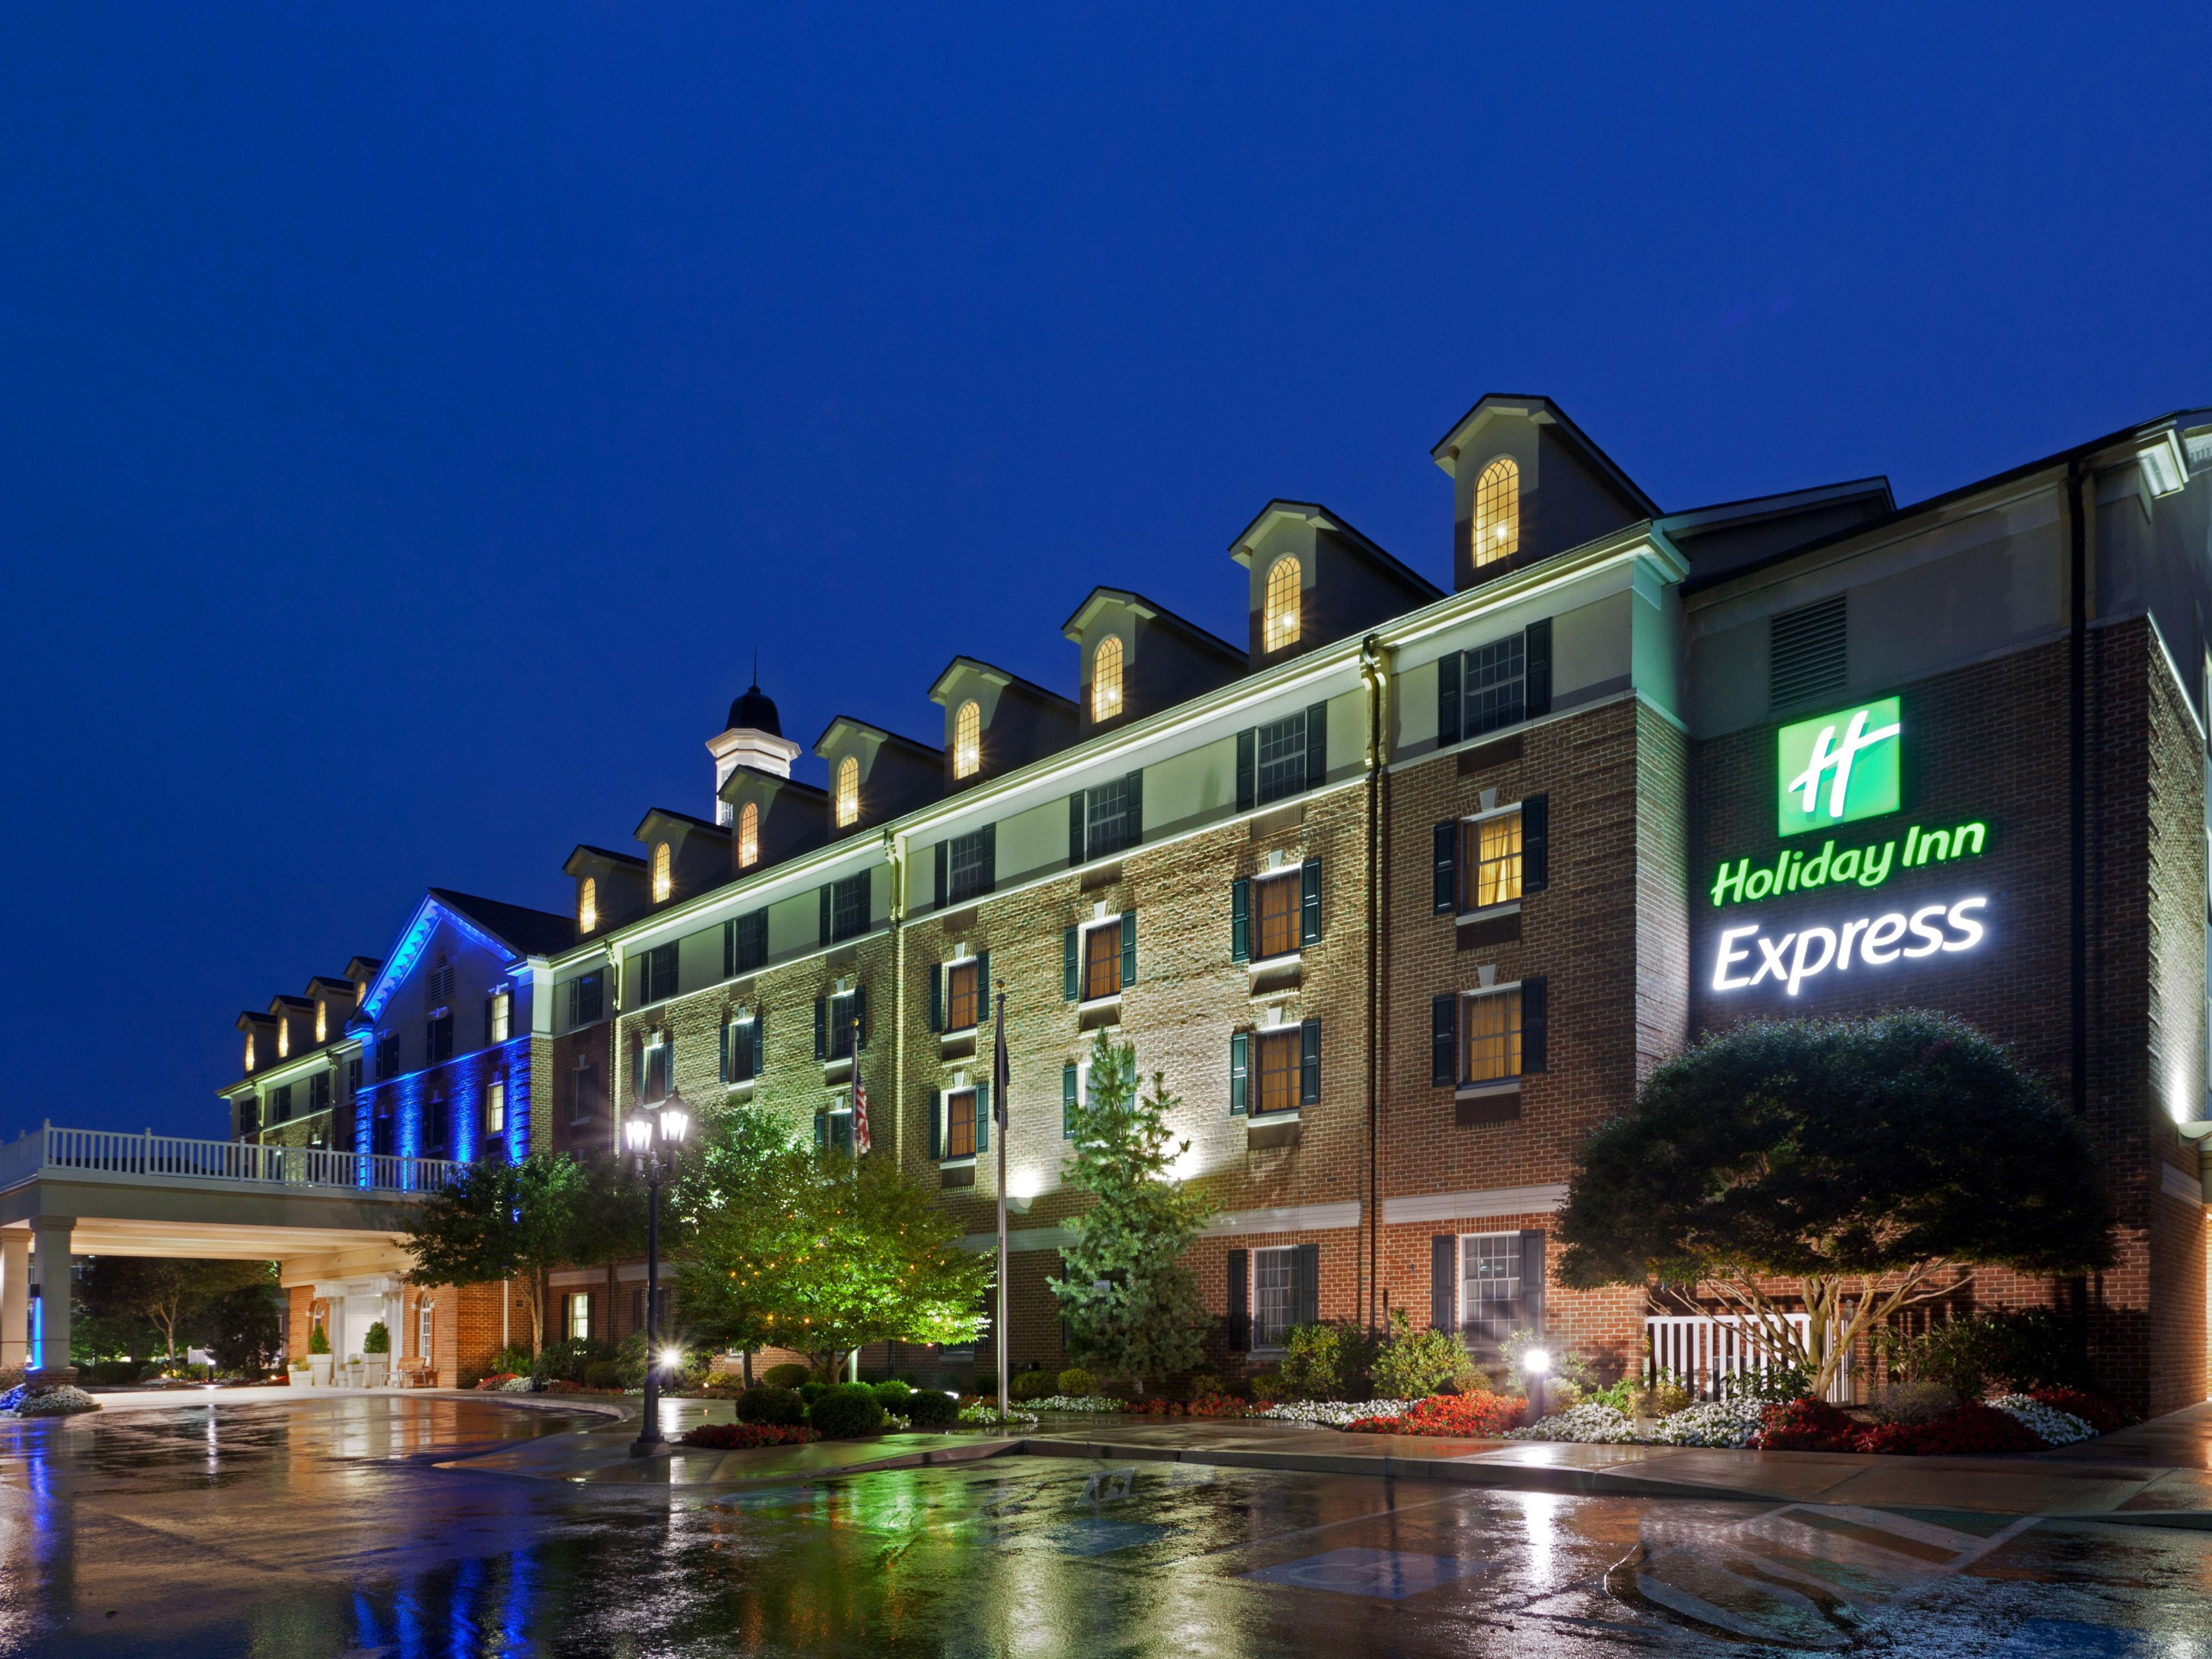 State College Holiday Inn Express Hotel Exterior